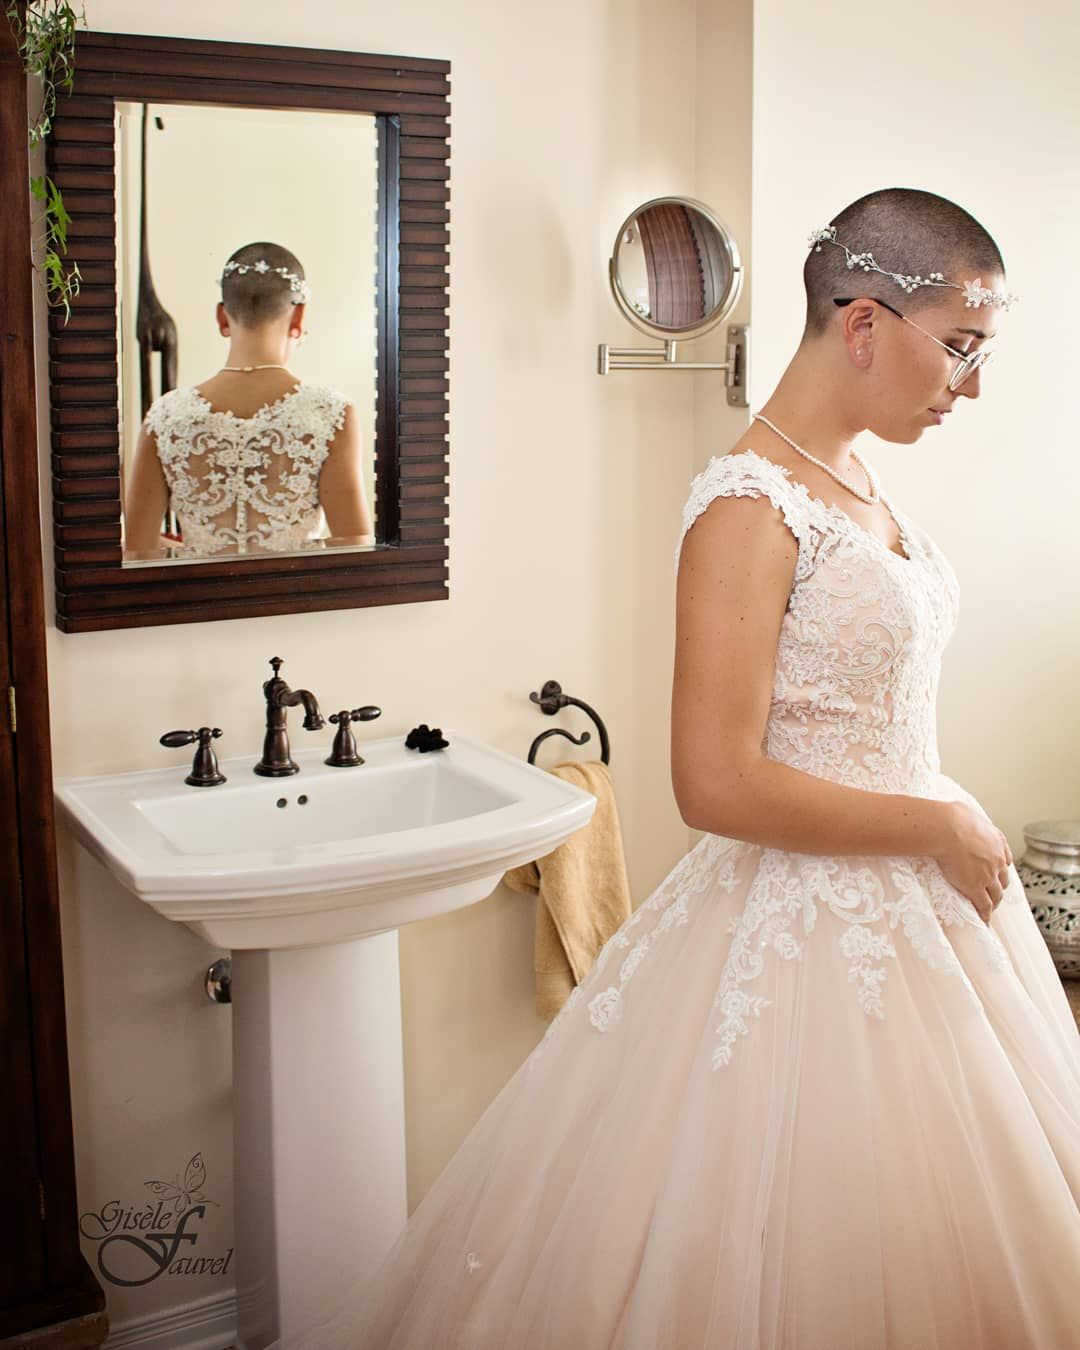 Bride With Shaved Head Bald Woman In Wedding Dress Bald Women Short Bridal Hair Shaved Head Women [ 1350 x 1080 Pixel ]